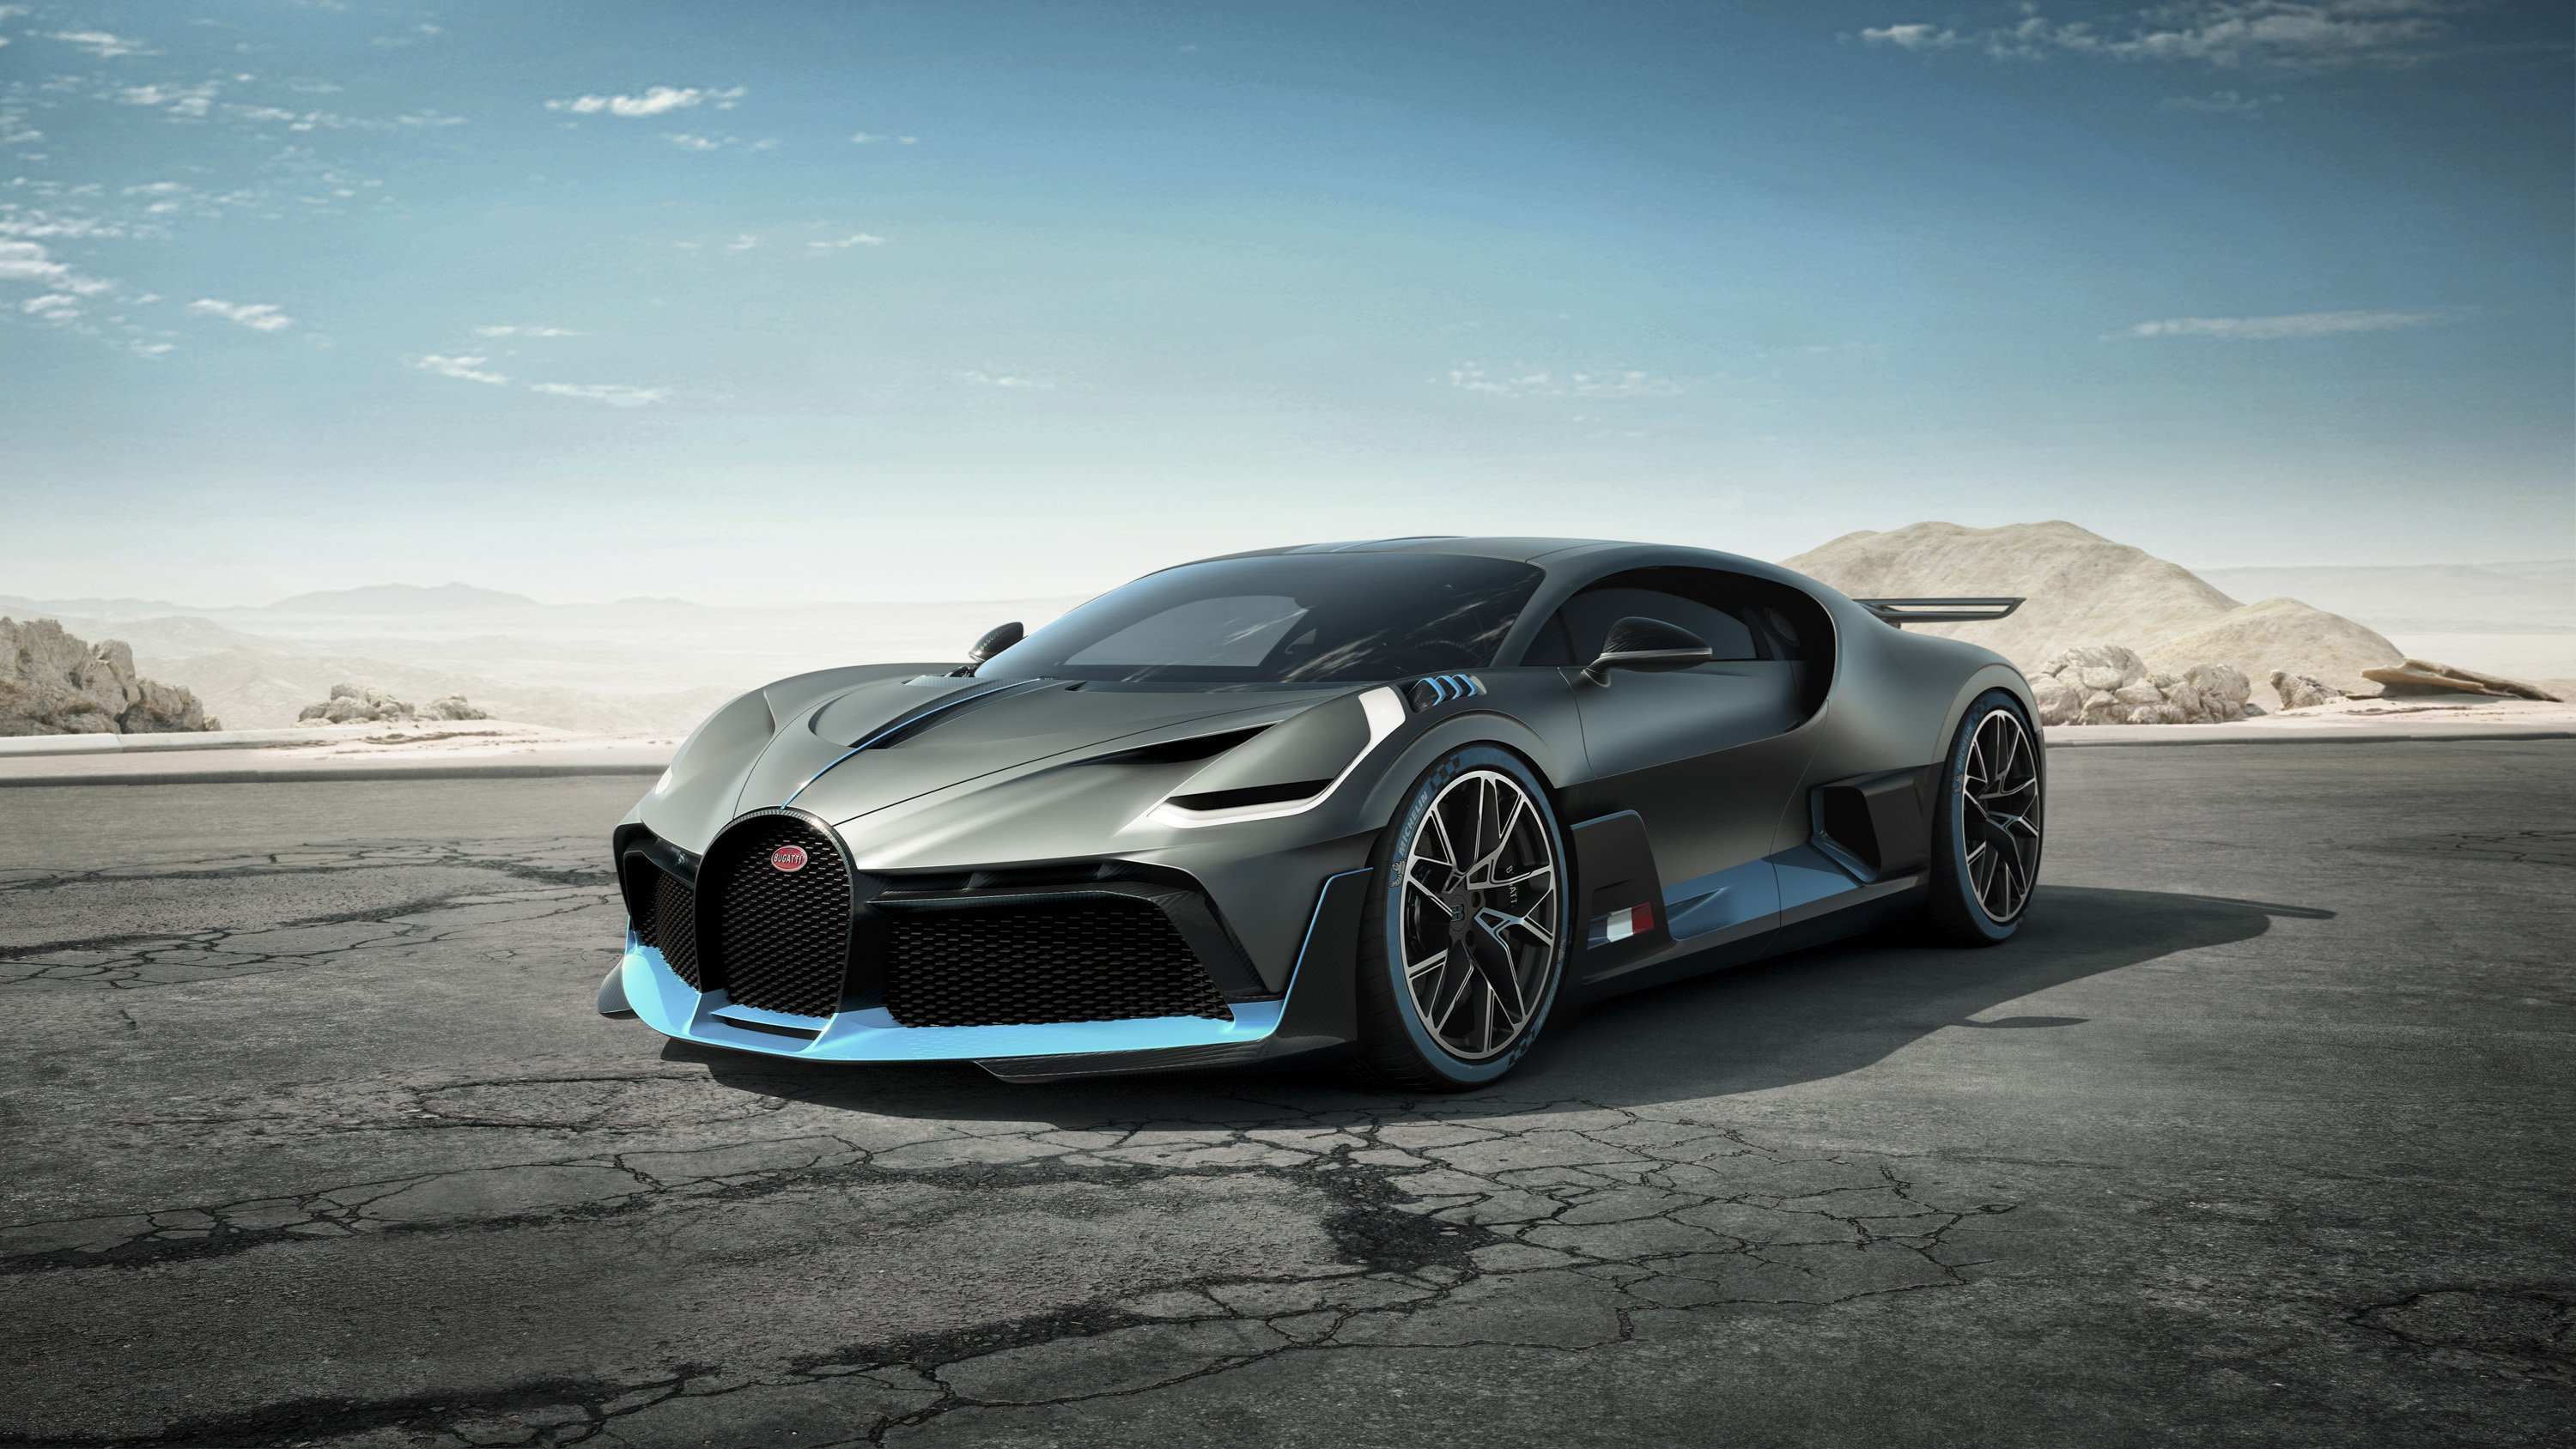 85 Concept of 2019 Bugatti For Sale Exterior and Interior for 2019 Bugatti For Sale